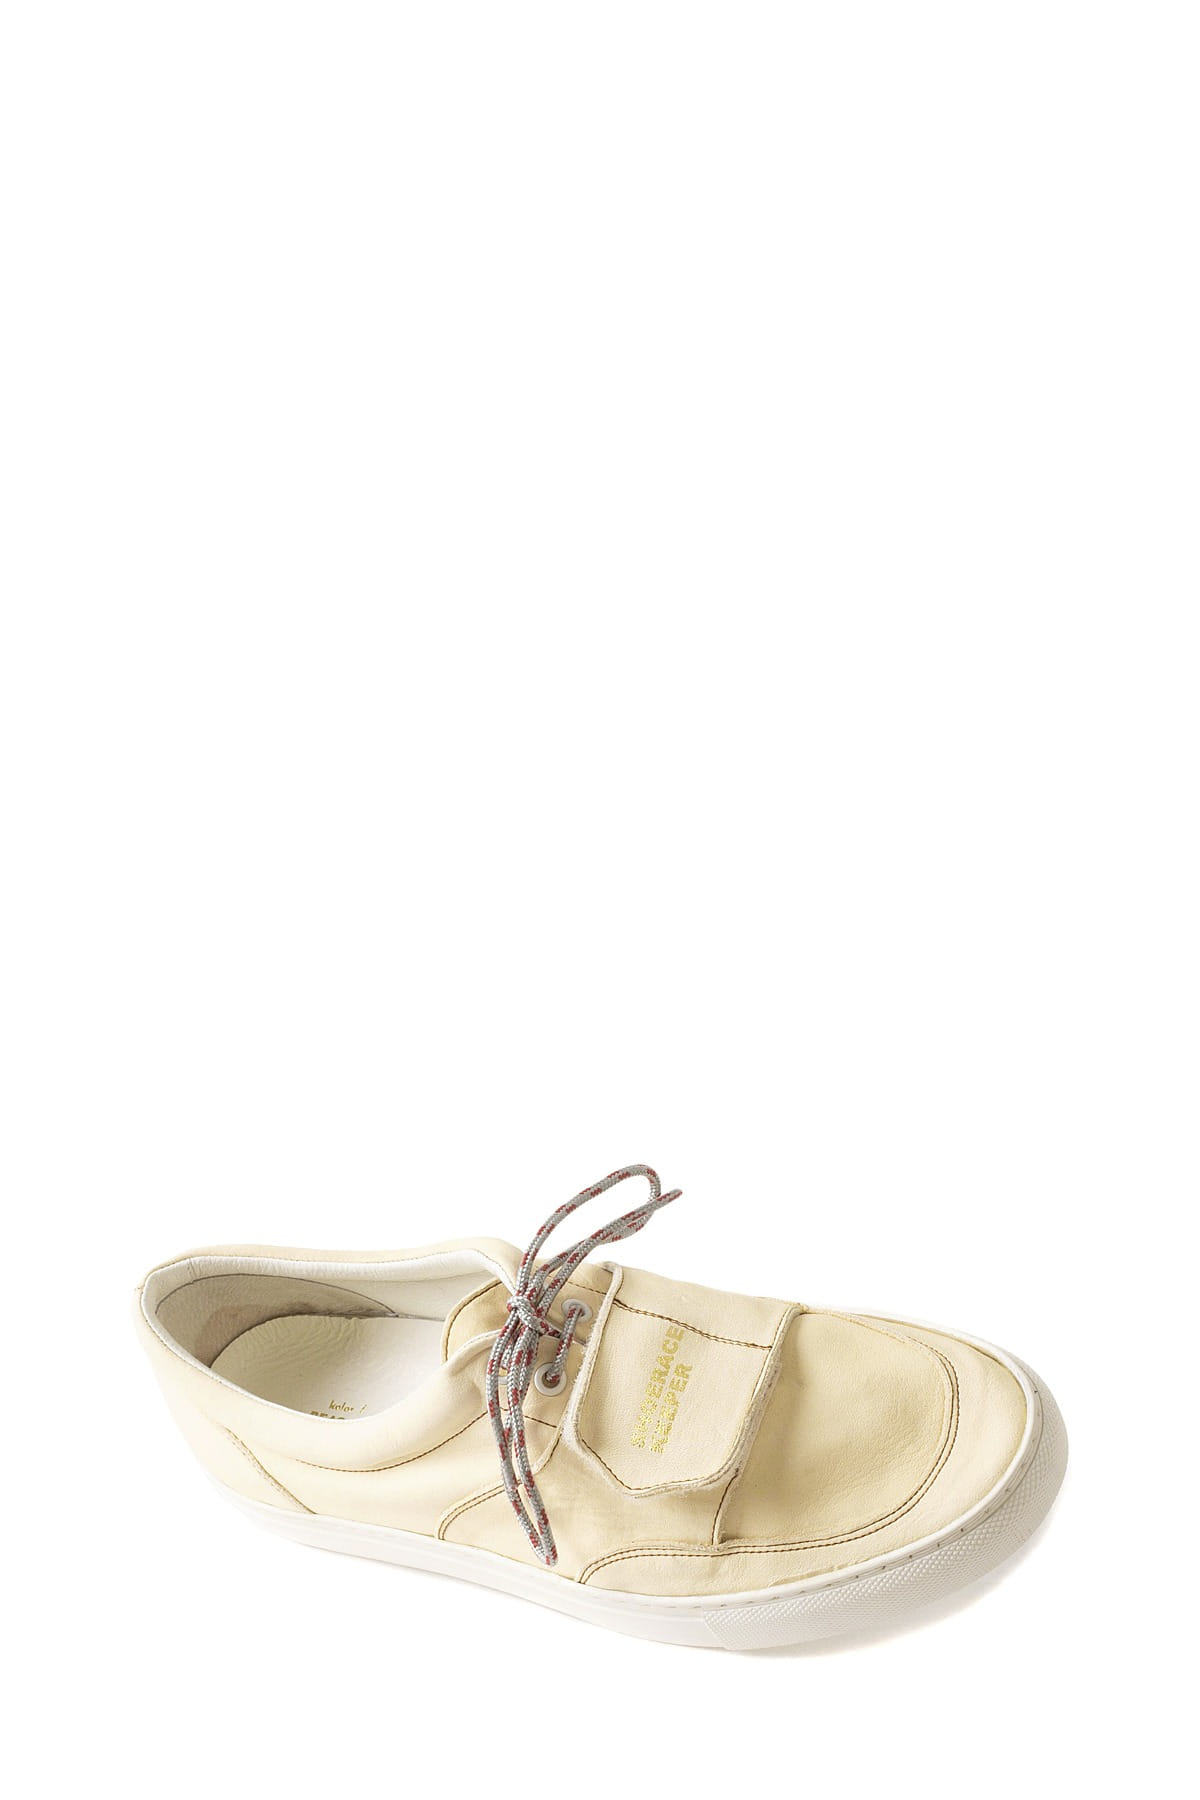 kolor / BEACON : A03532 Shoes (Oatmeal / White)